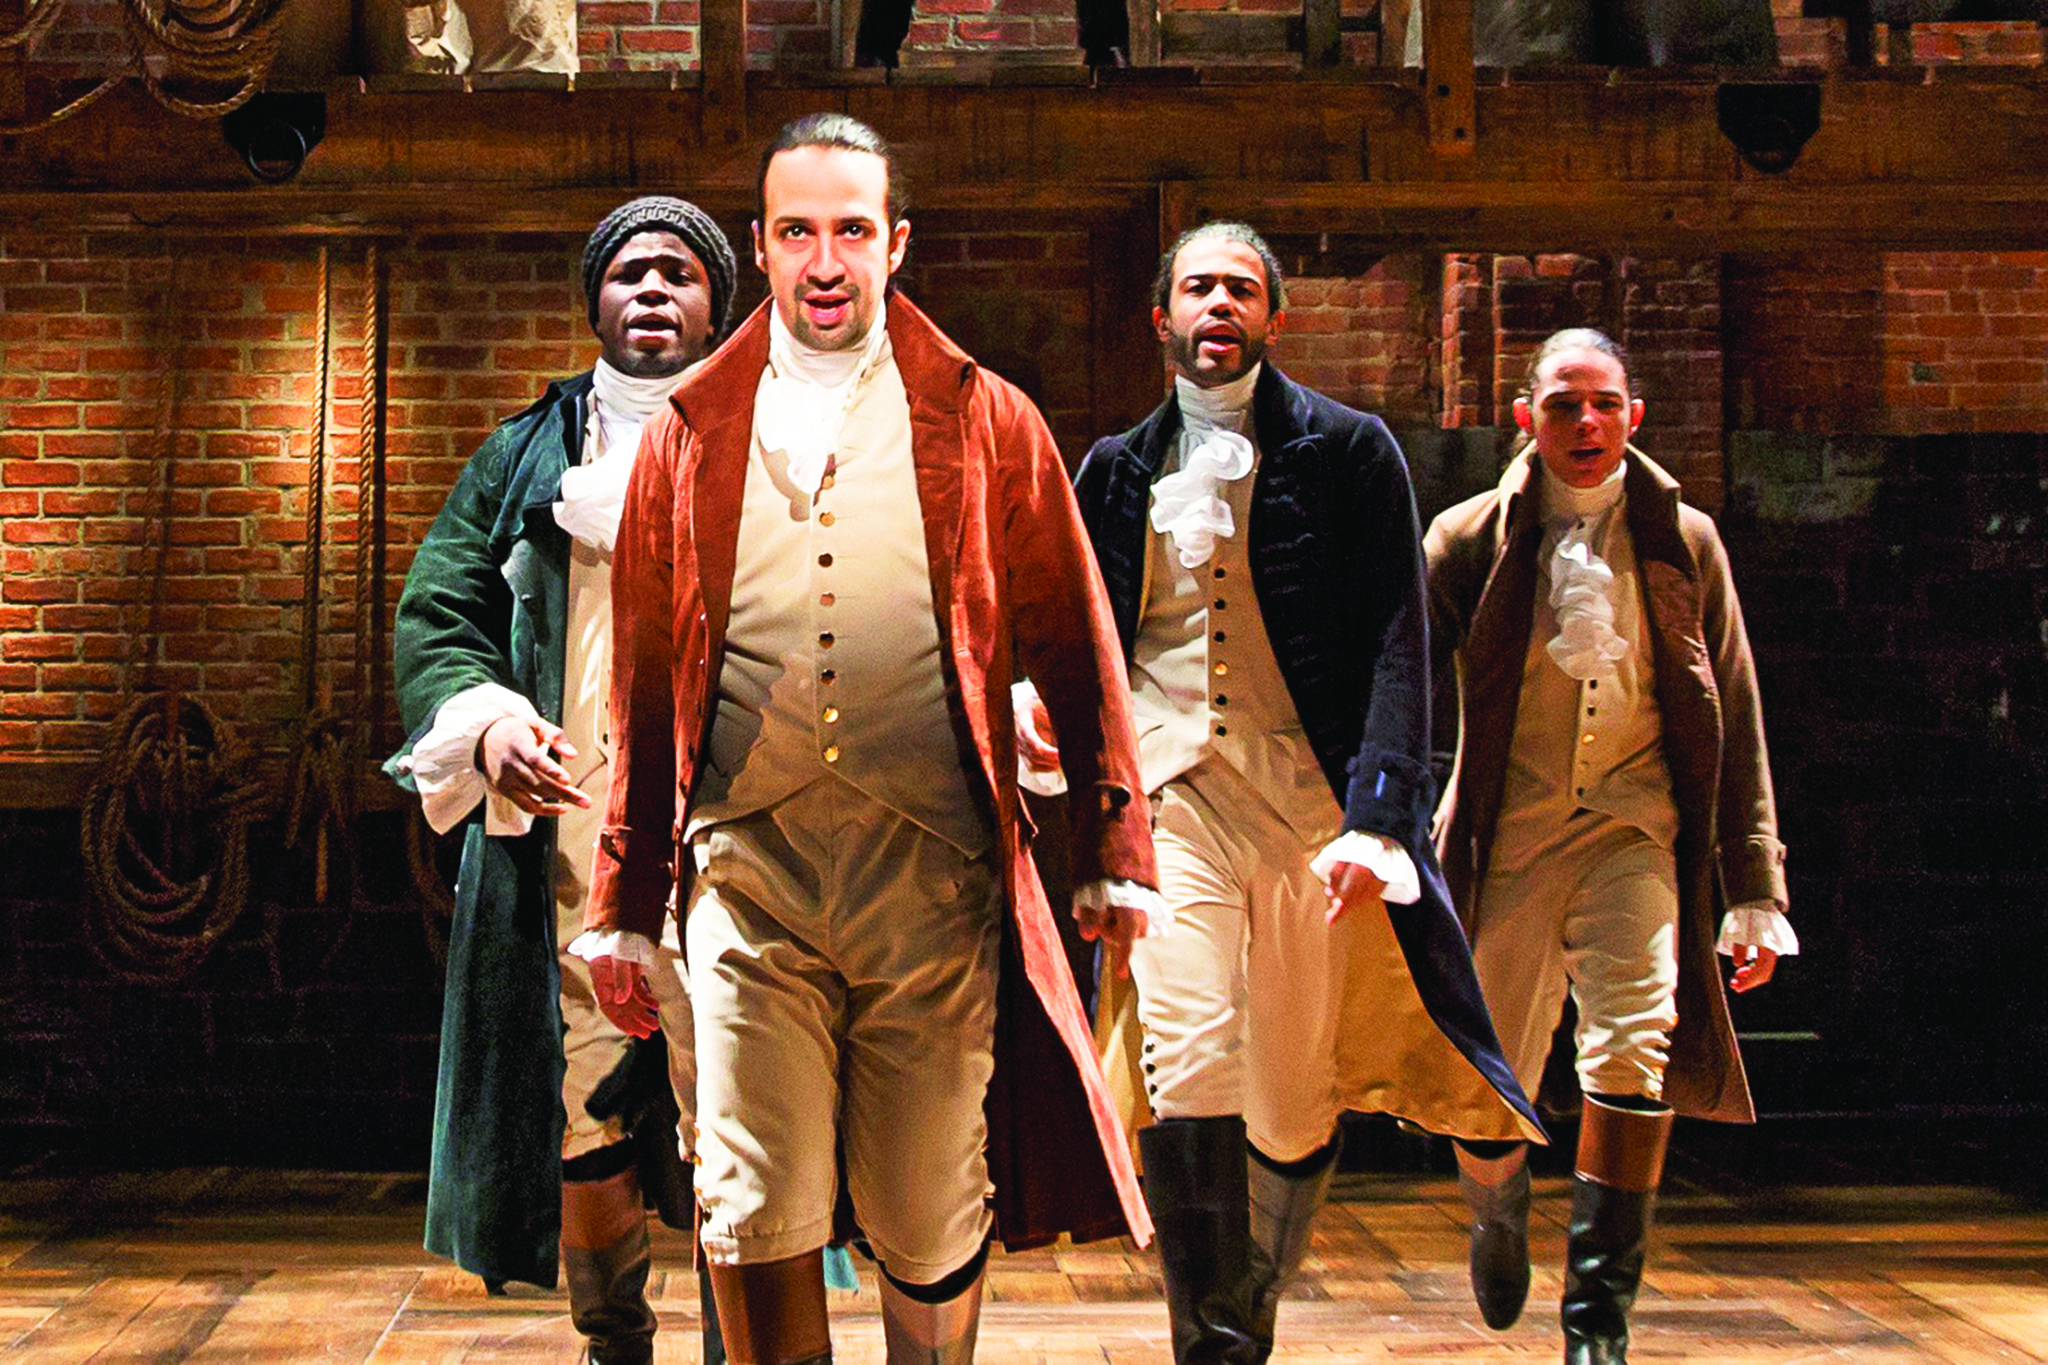 Hamilton just misses making history with 11 Tony Awards